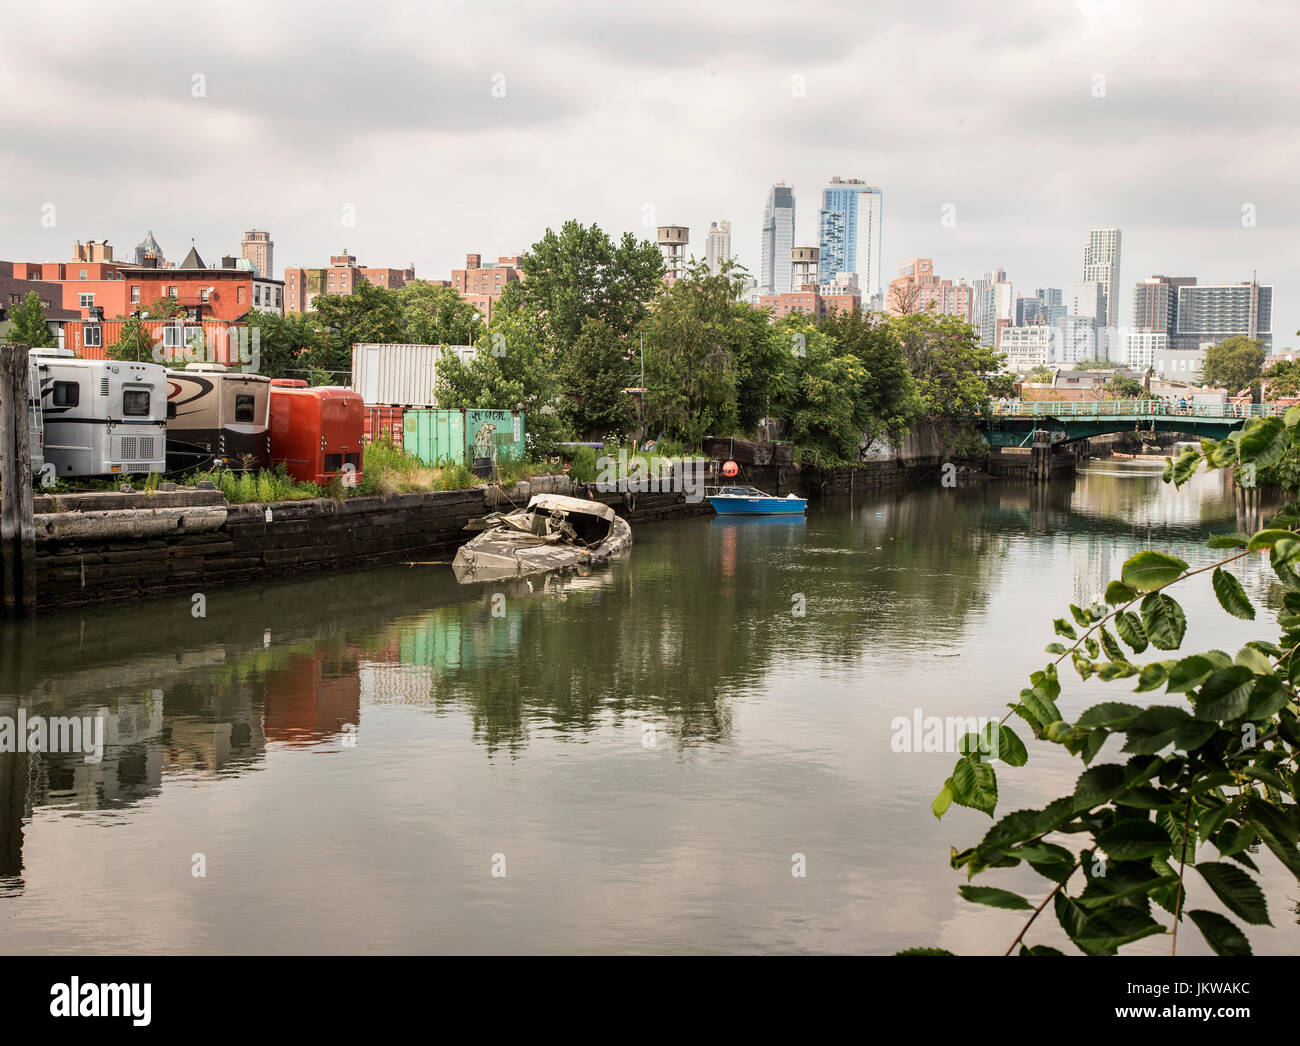 The Gowanus Canal in Brooklyn, New York - Stock Image